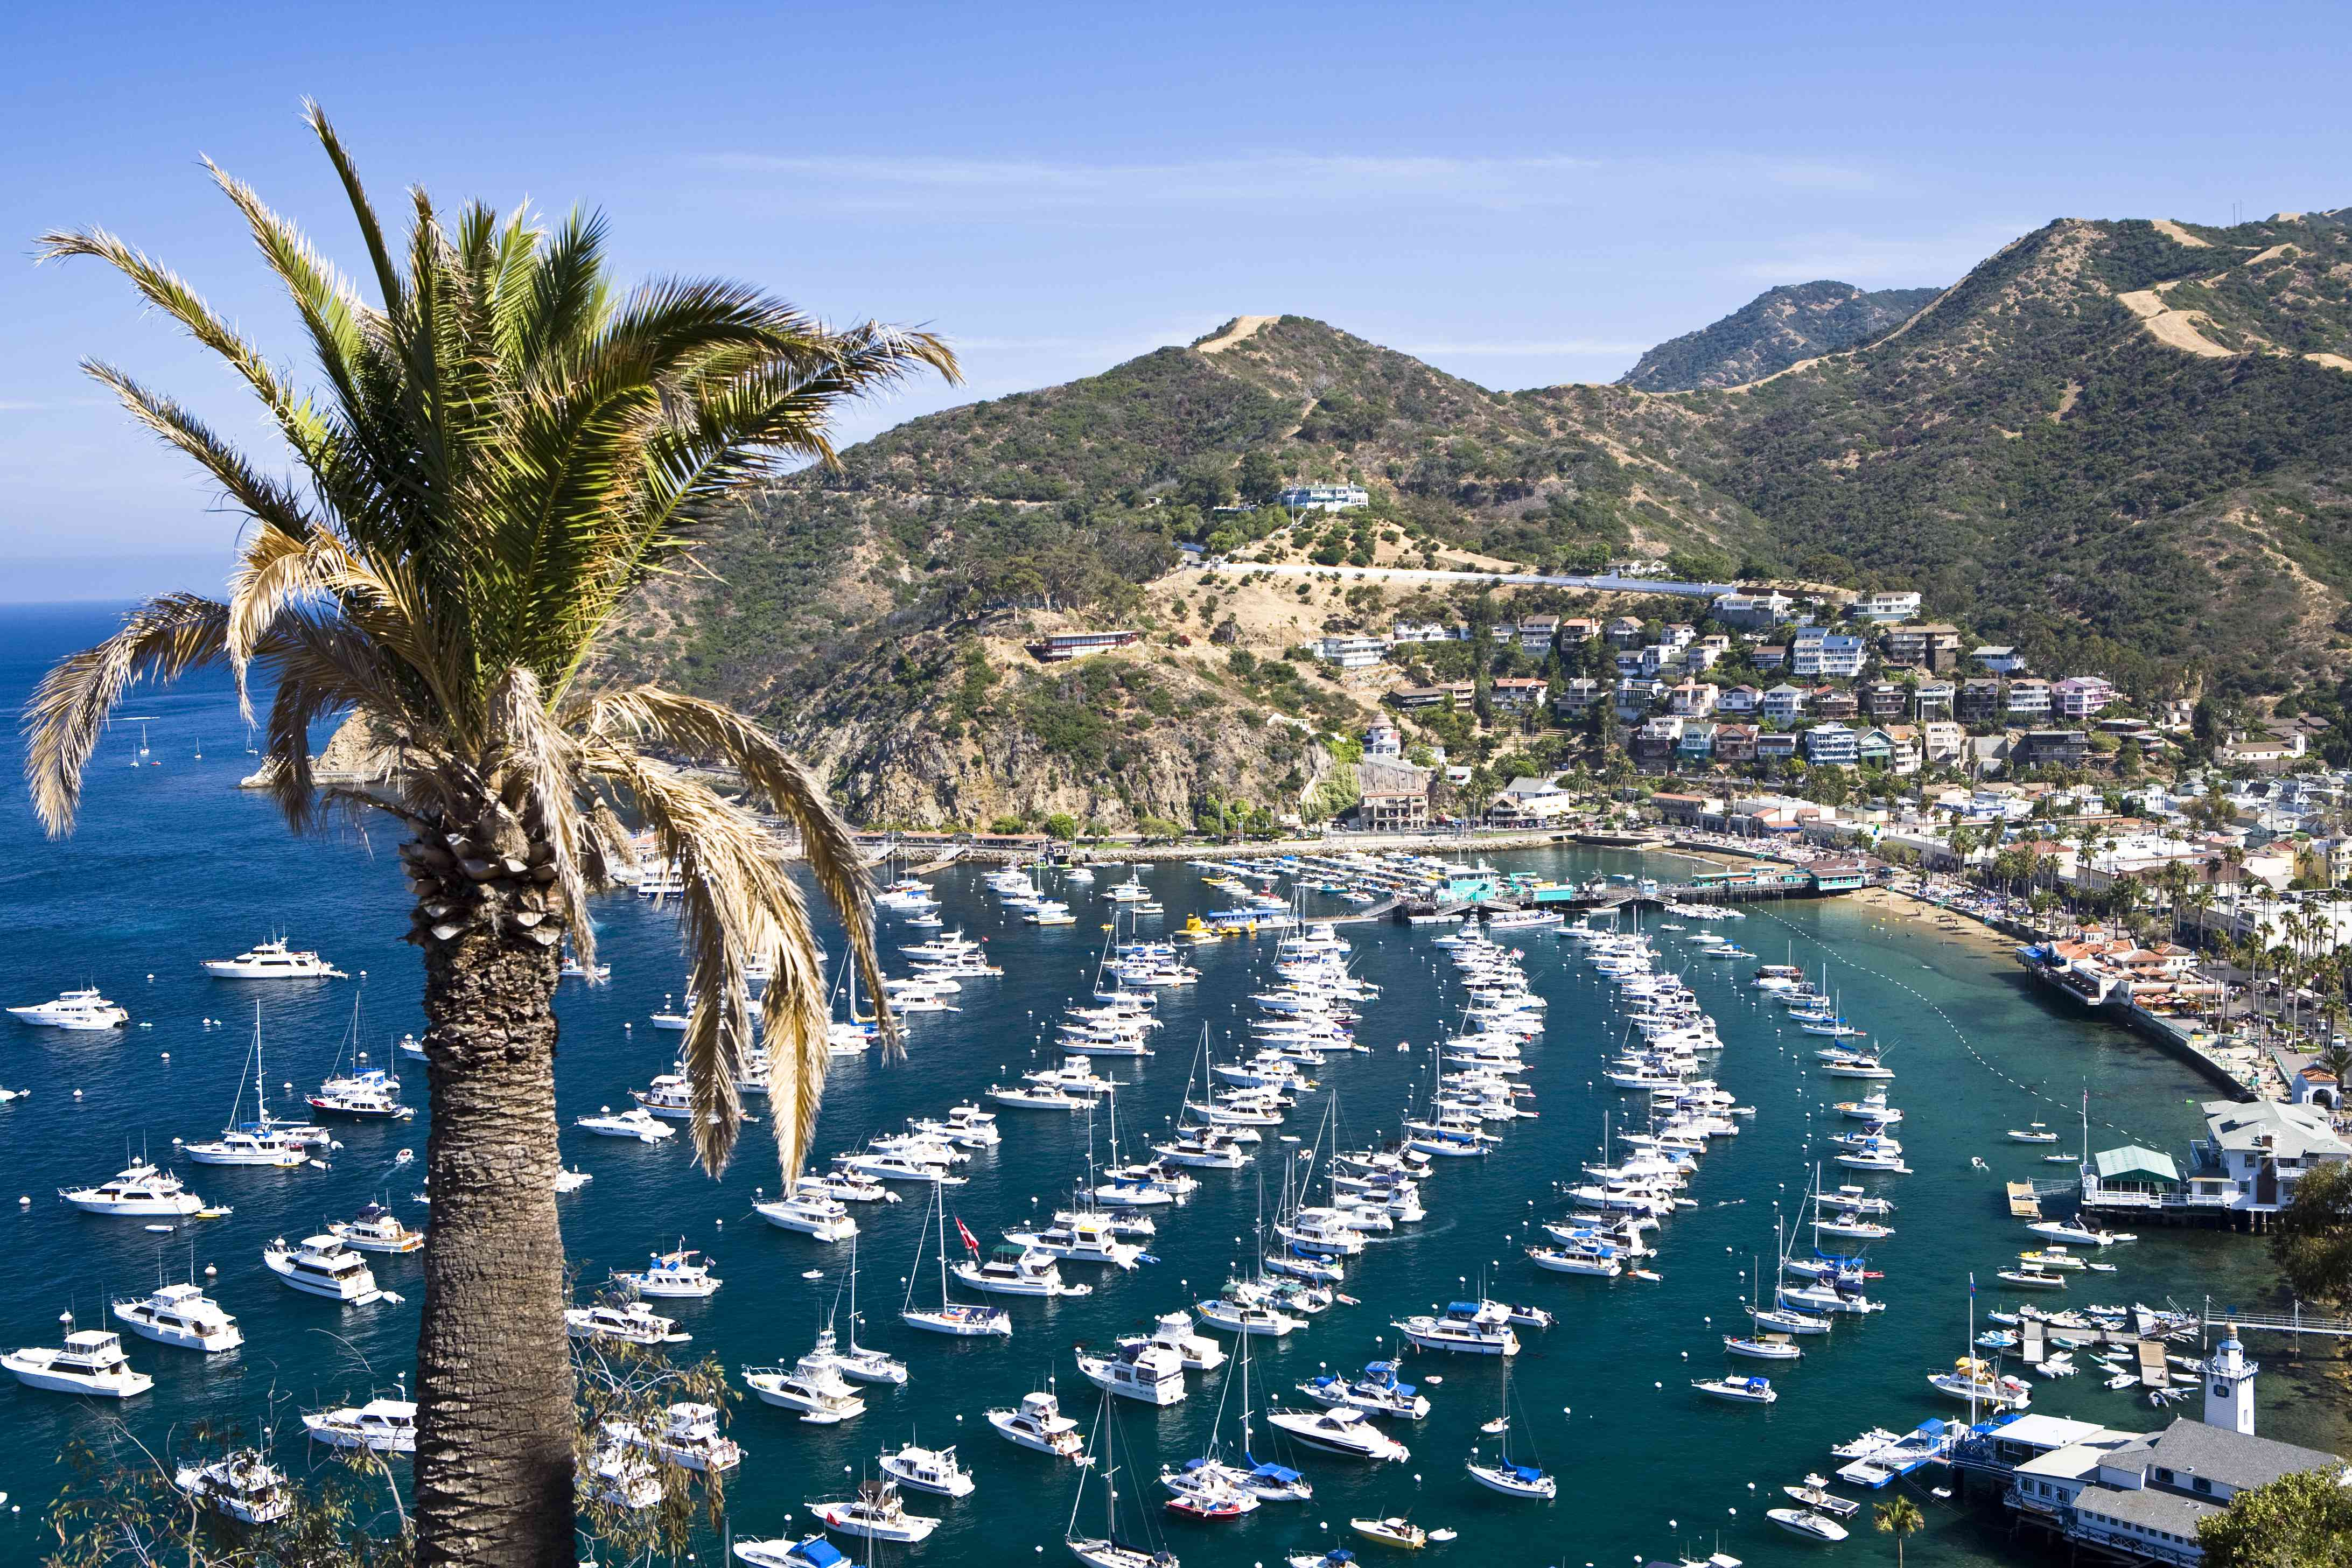 Boats lined up in busy Avalon Harbor on Catalina Island